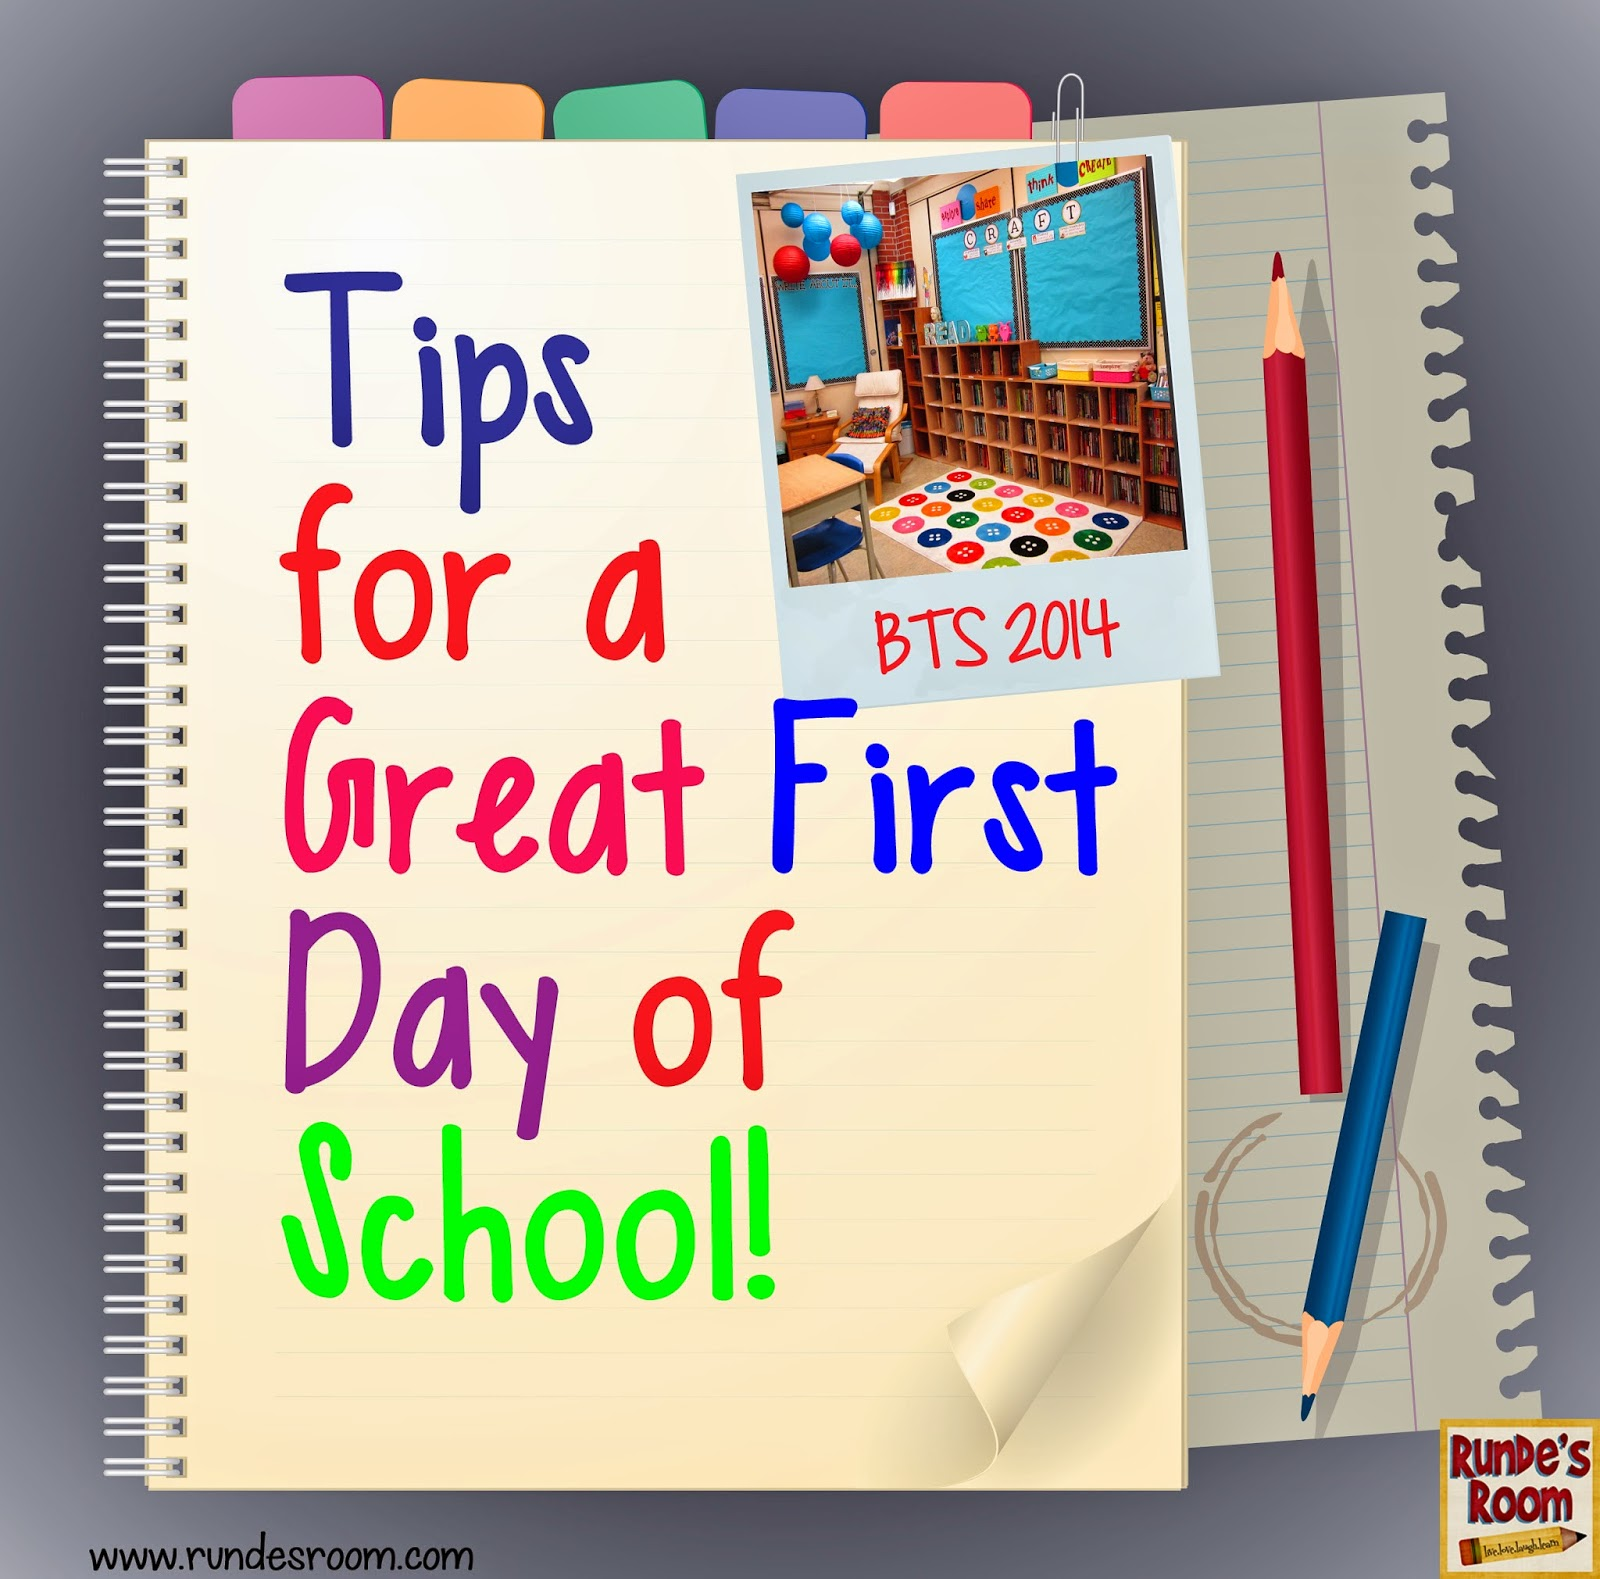 Runde's Room: Hook Them From The First Day ... Tips For